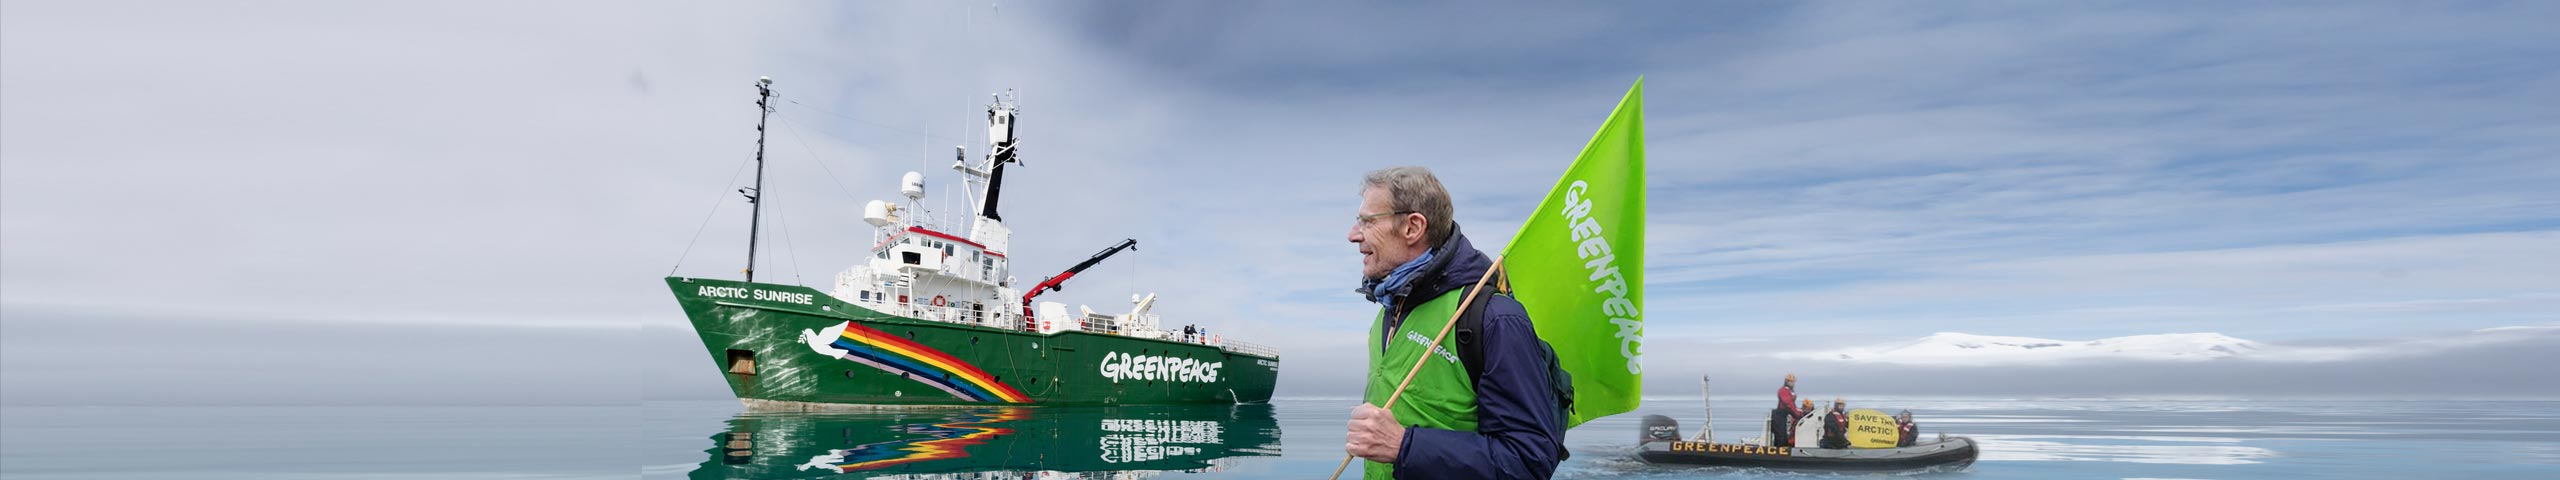 Lambert Wilson supports Greenpeace for the environment